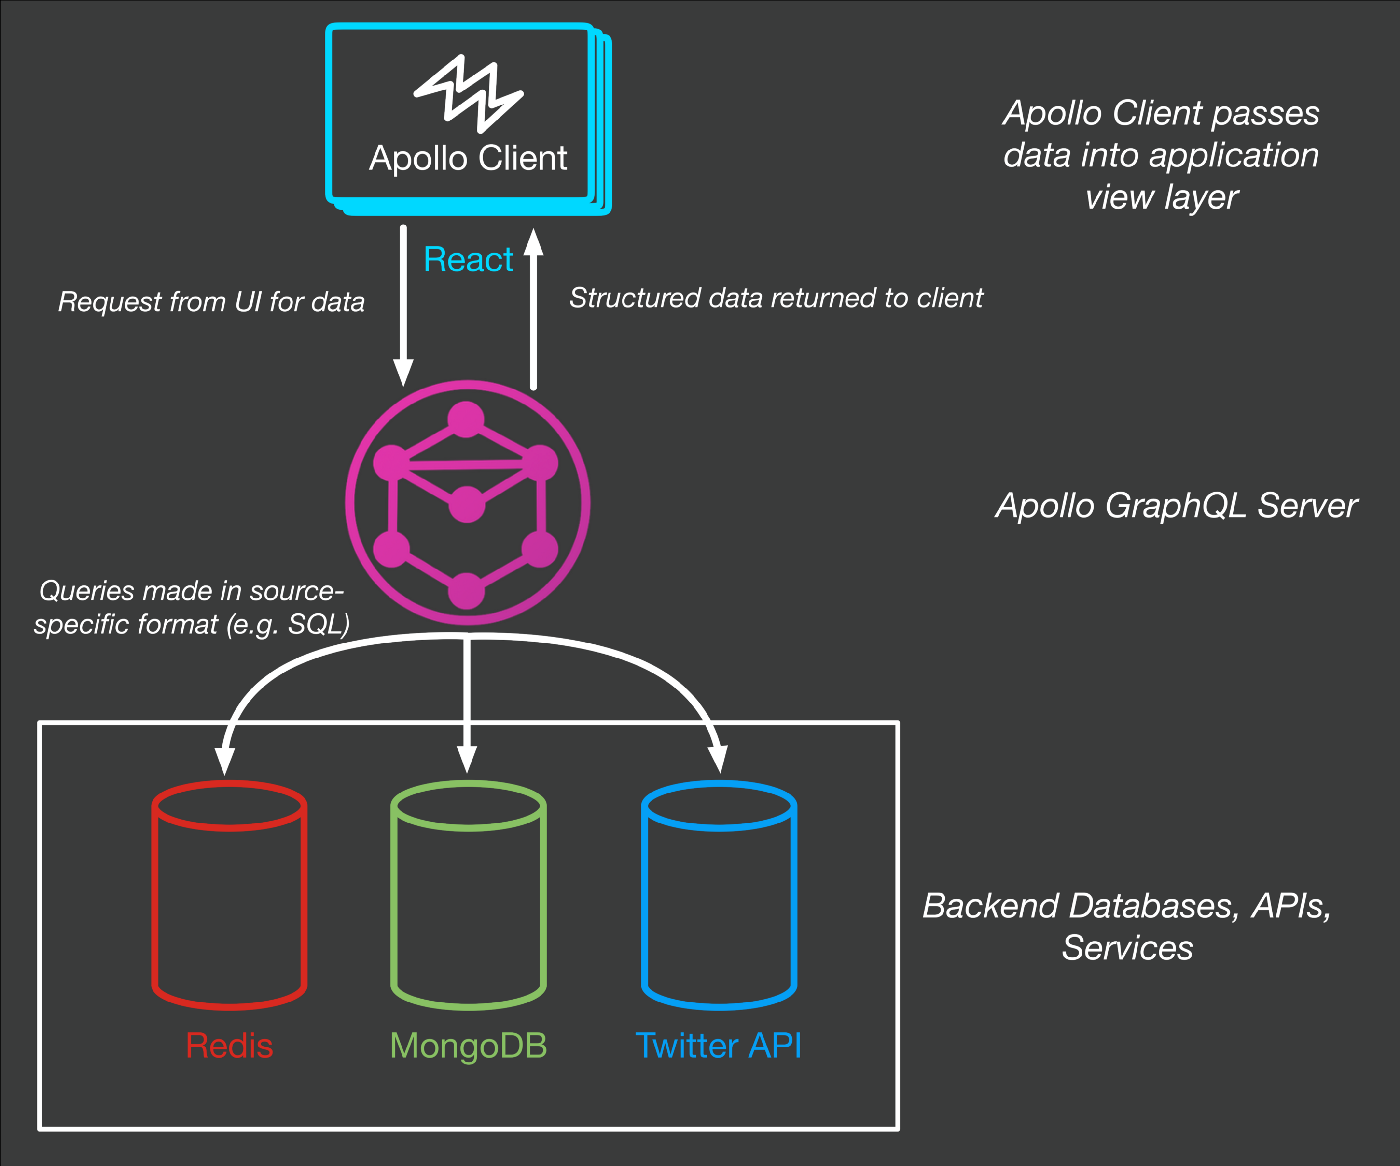 The Meteor Chef: An Introduction to Apollo - Meteor Blog